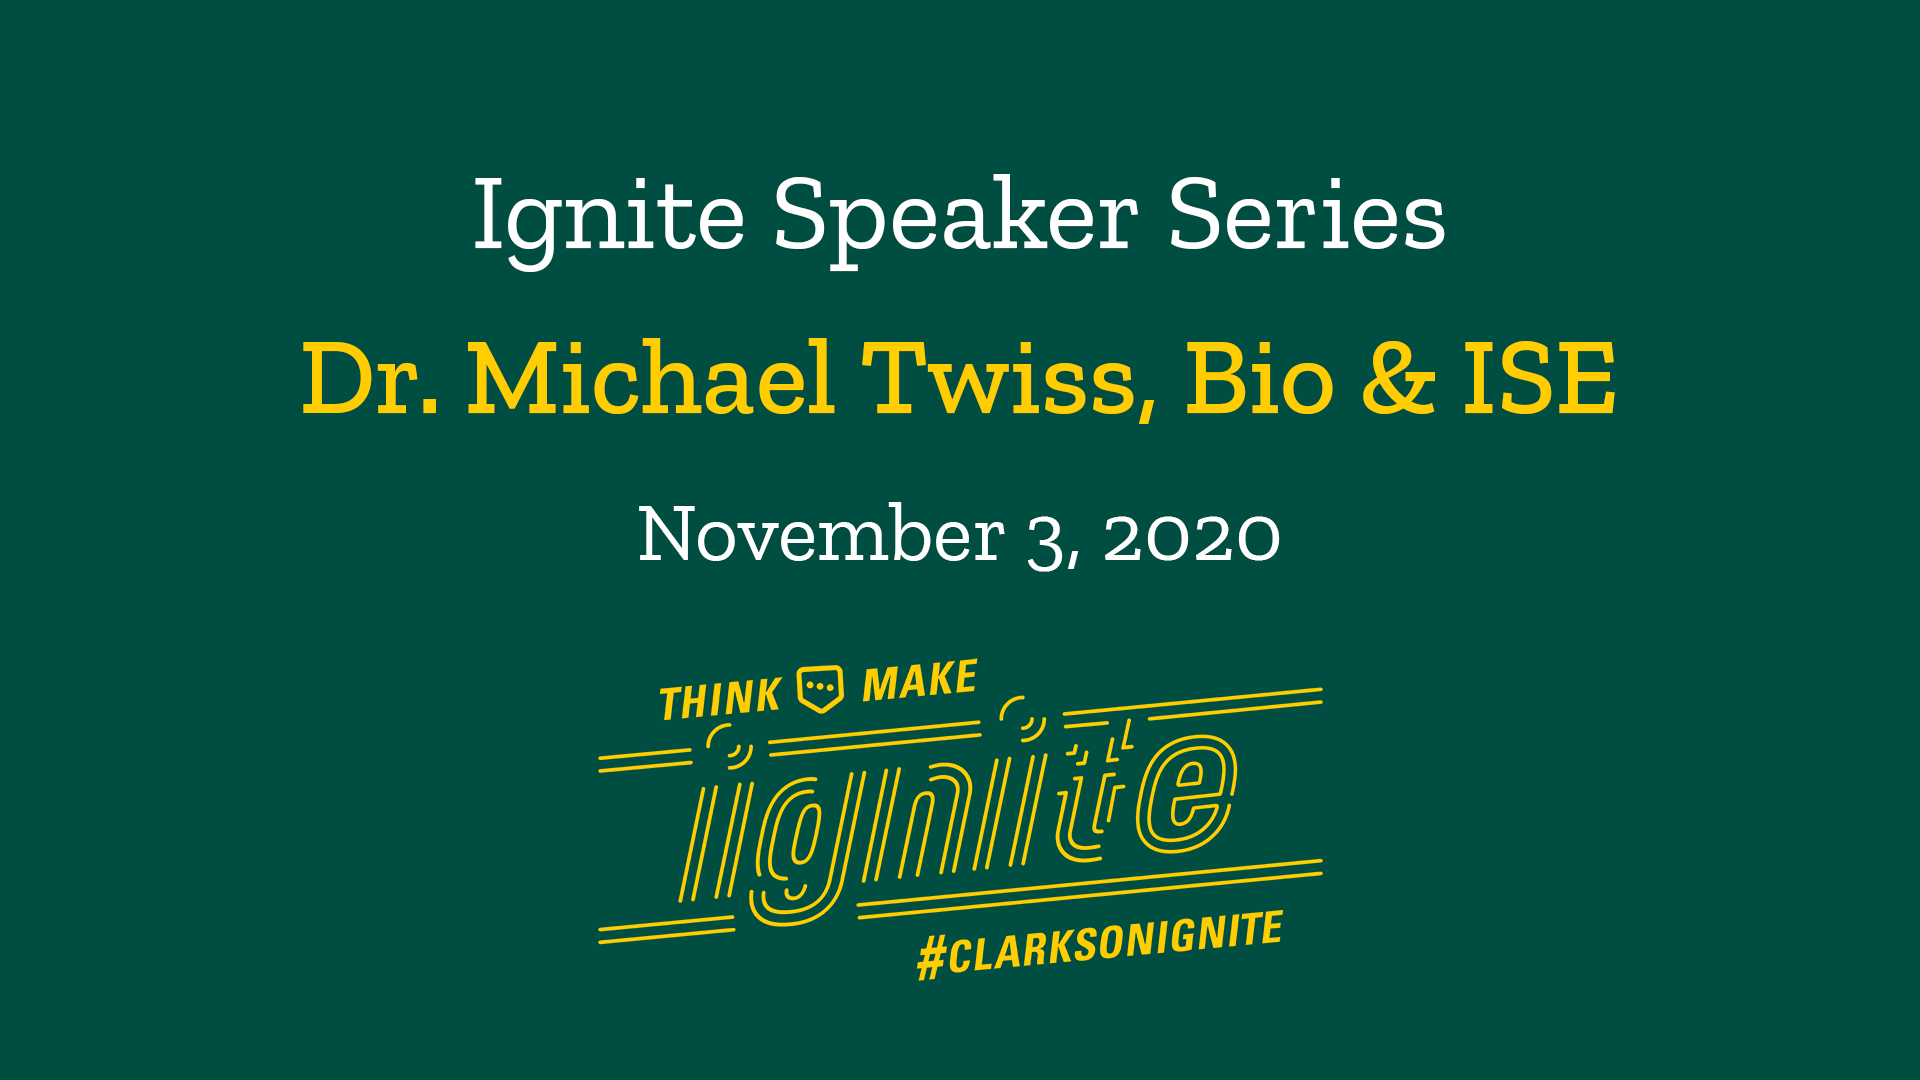 Ignite Speaker Series – November 3, 2020 2 PM